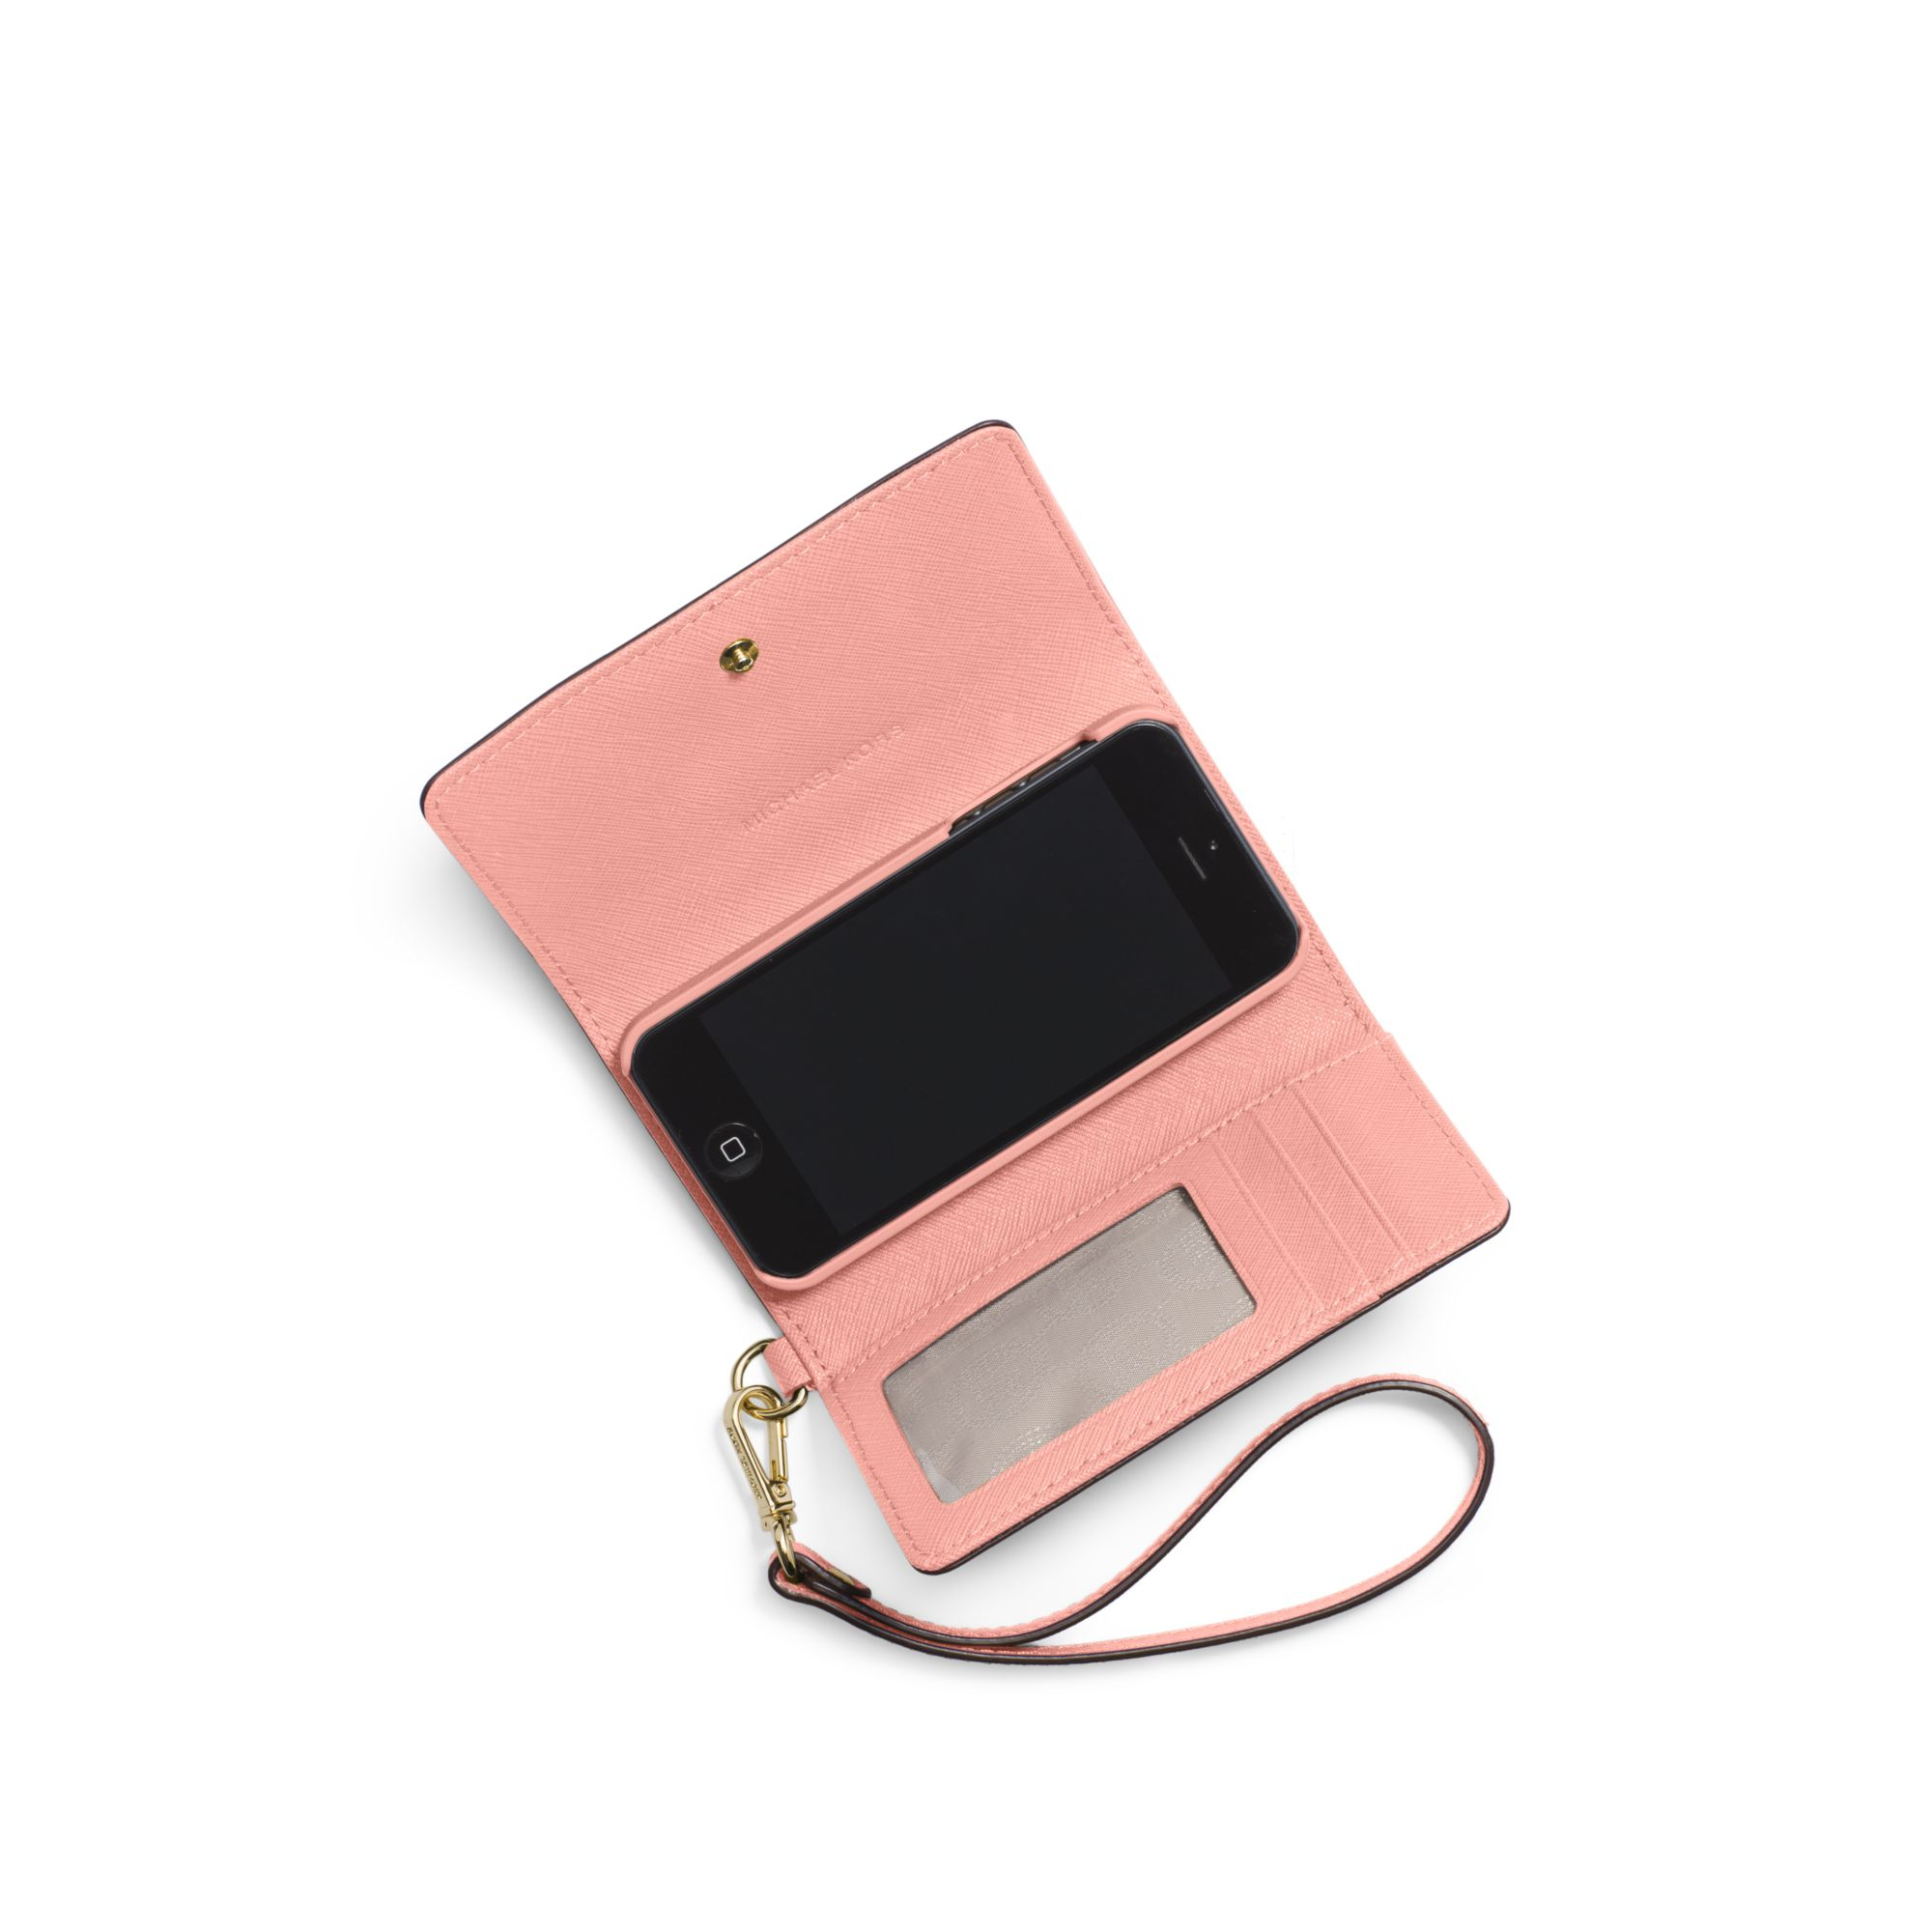 ba004ac3b6 Lyst Michael Kors Saffiano Leather Phone Wristlet For Iphone 5 In Pink